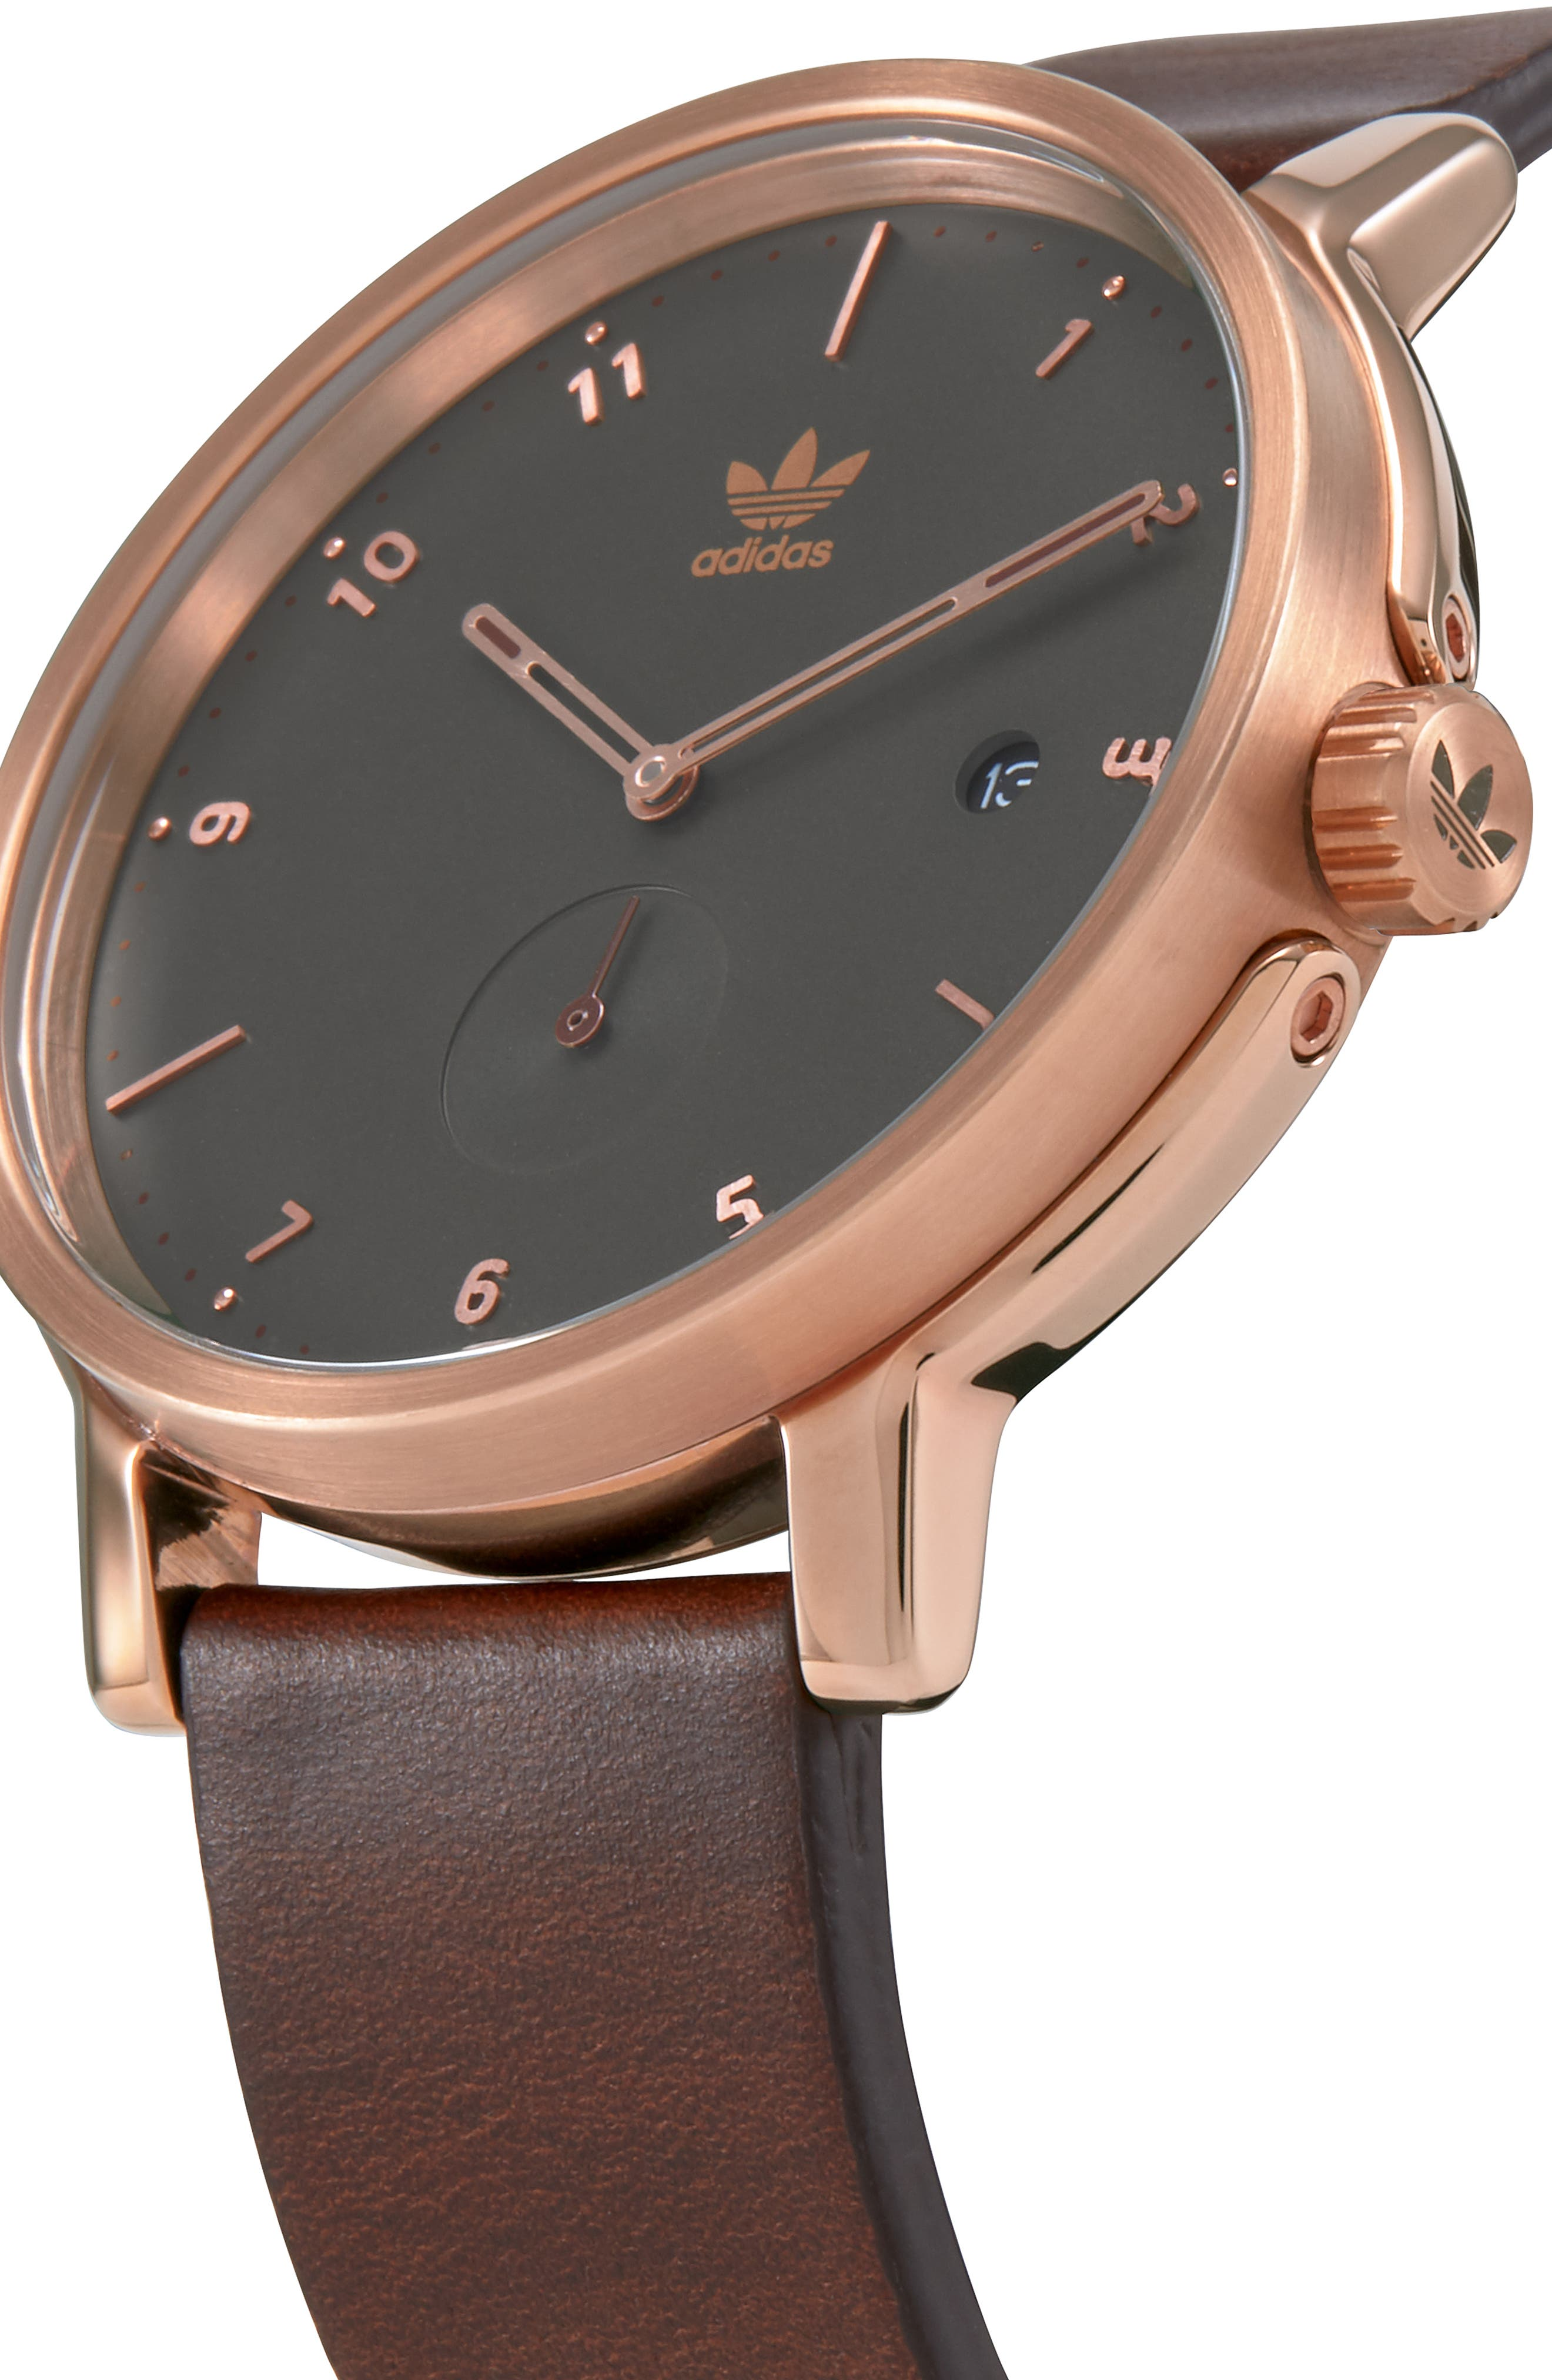 ADIDAS, District Leather Strap Watch, 40mm, Alternate thumbnail 5, color, BROWN/ OLIVE/ ROSE GOLD